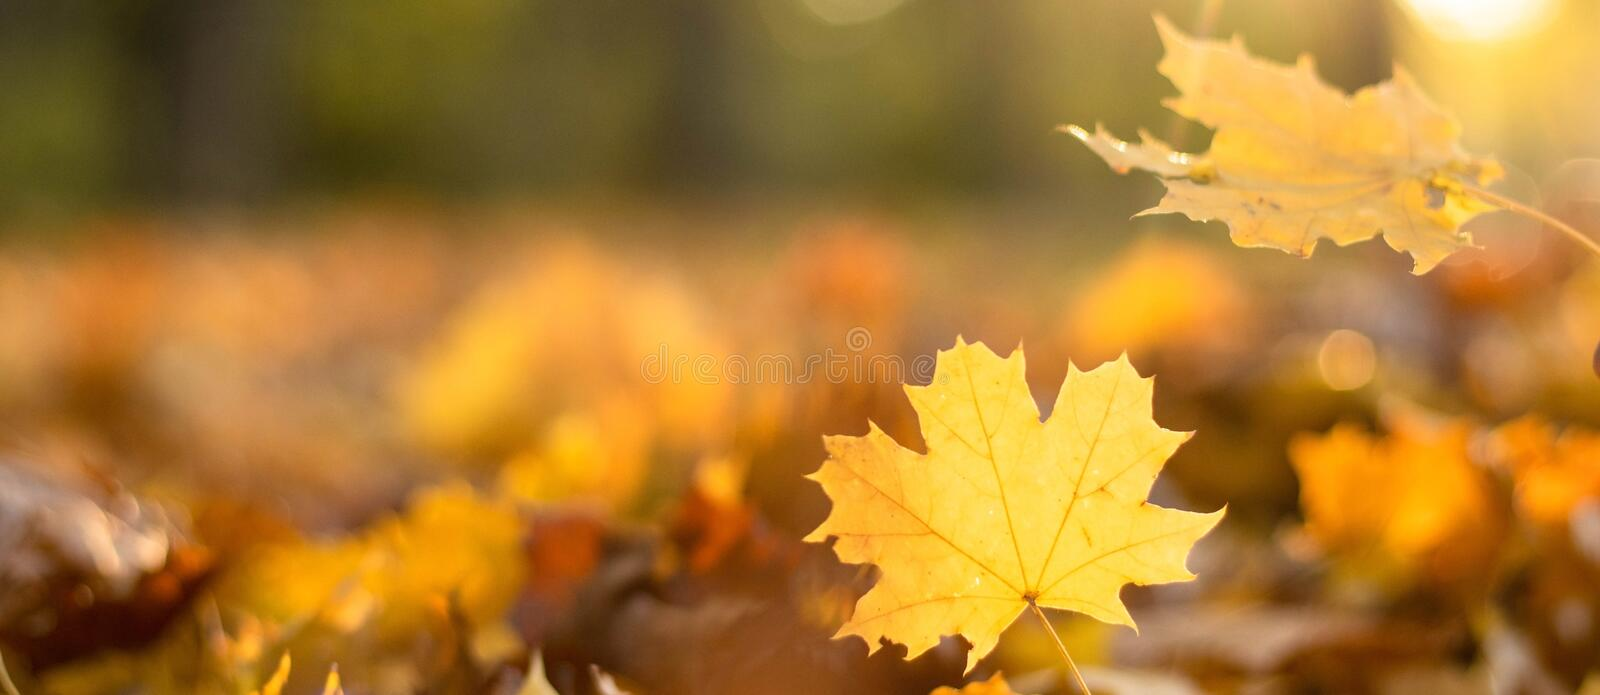 Fallen leaves in the autumn forest in sunny weather. Background with copy space. Thanksgiving Day mood banner.  stock image